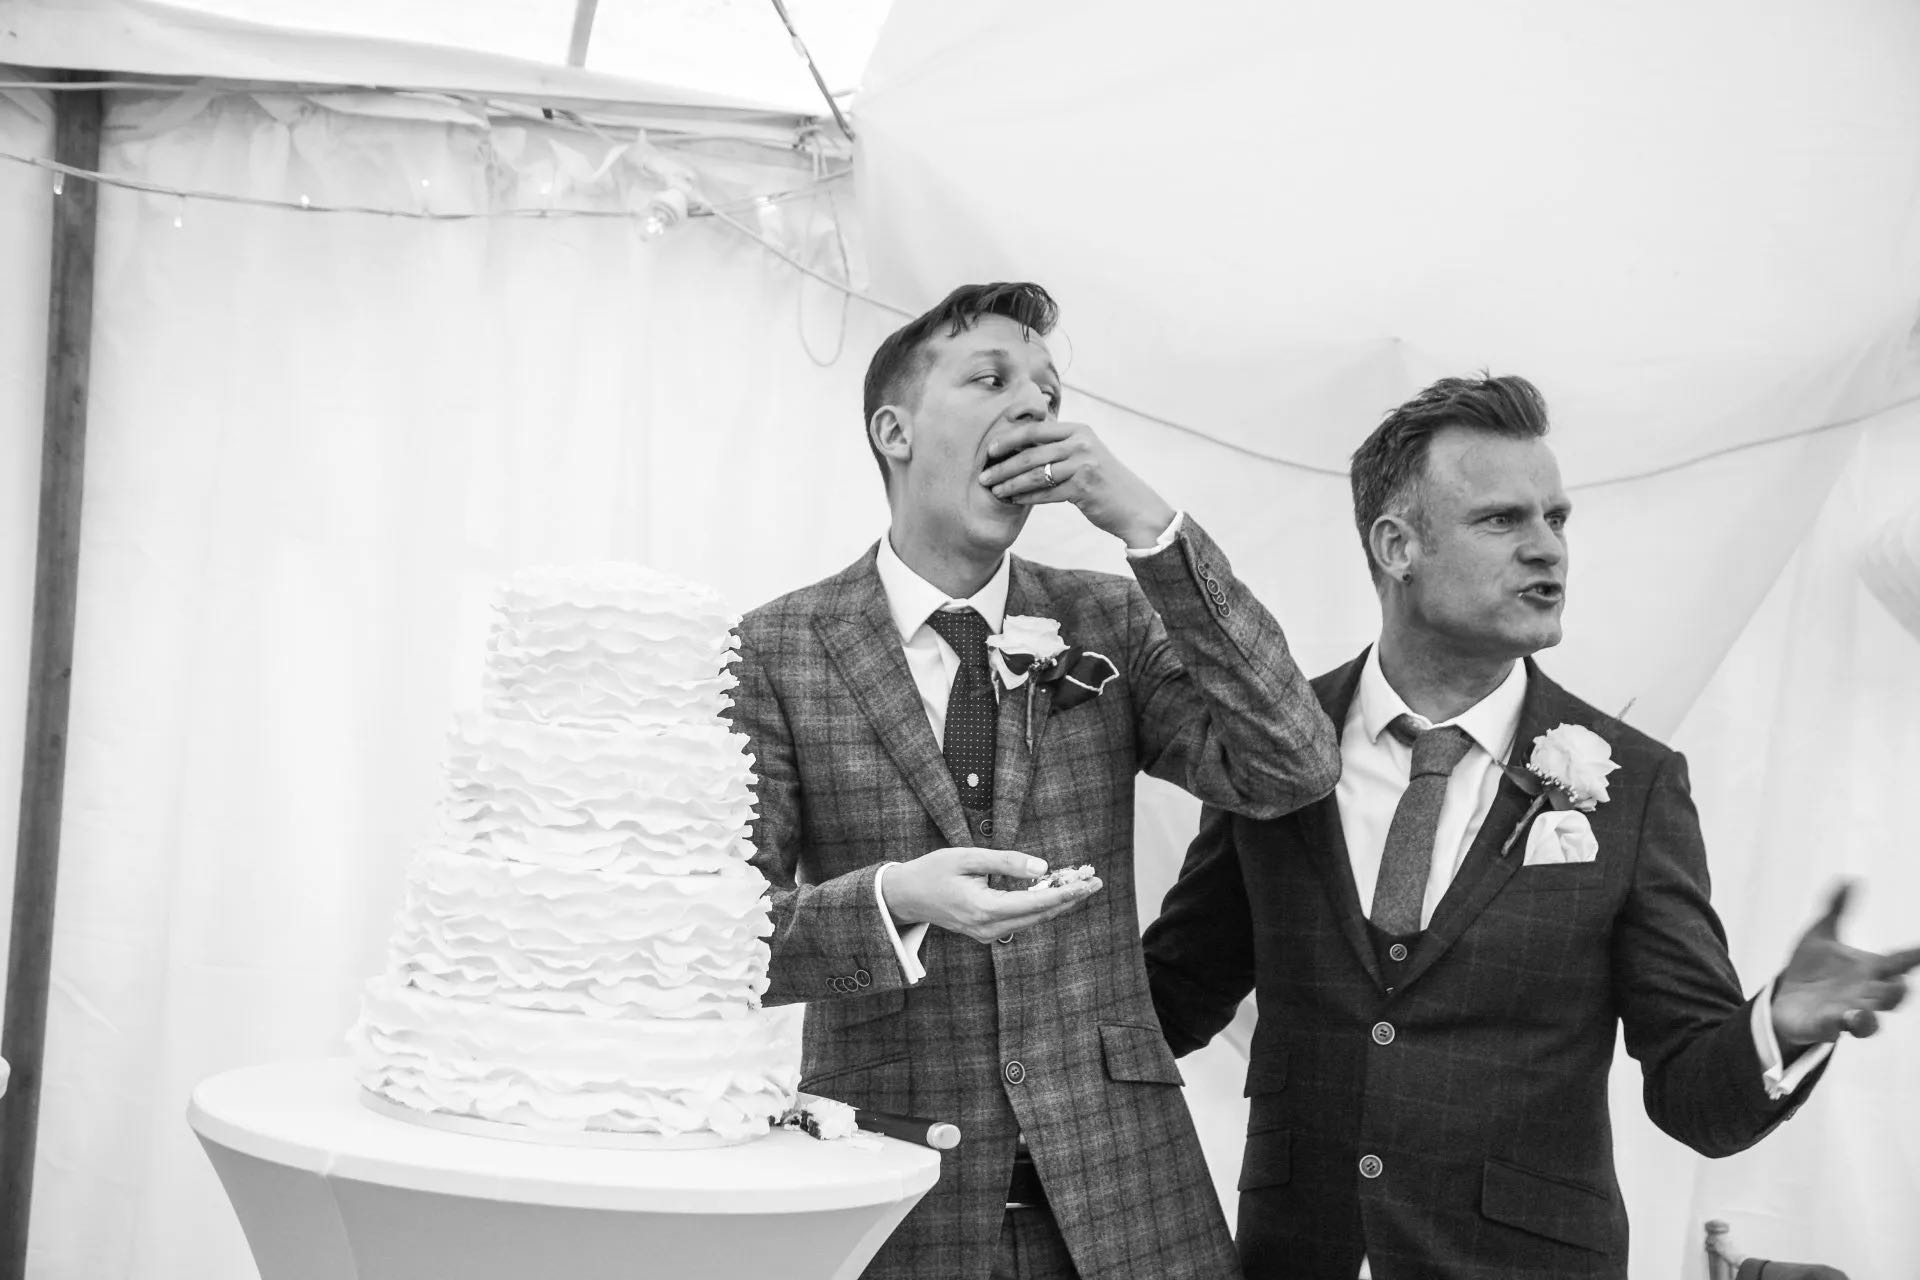 2 grooms enjoy the wedding cake at LGBT wedding ceremony